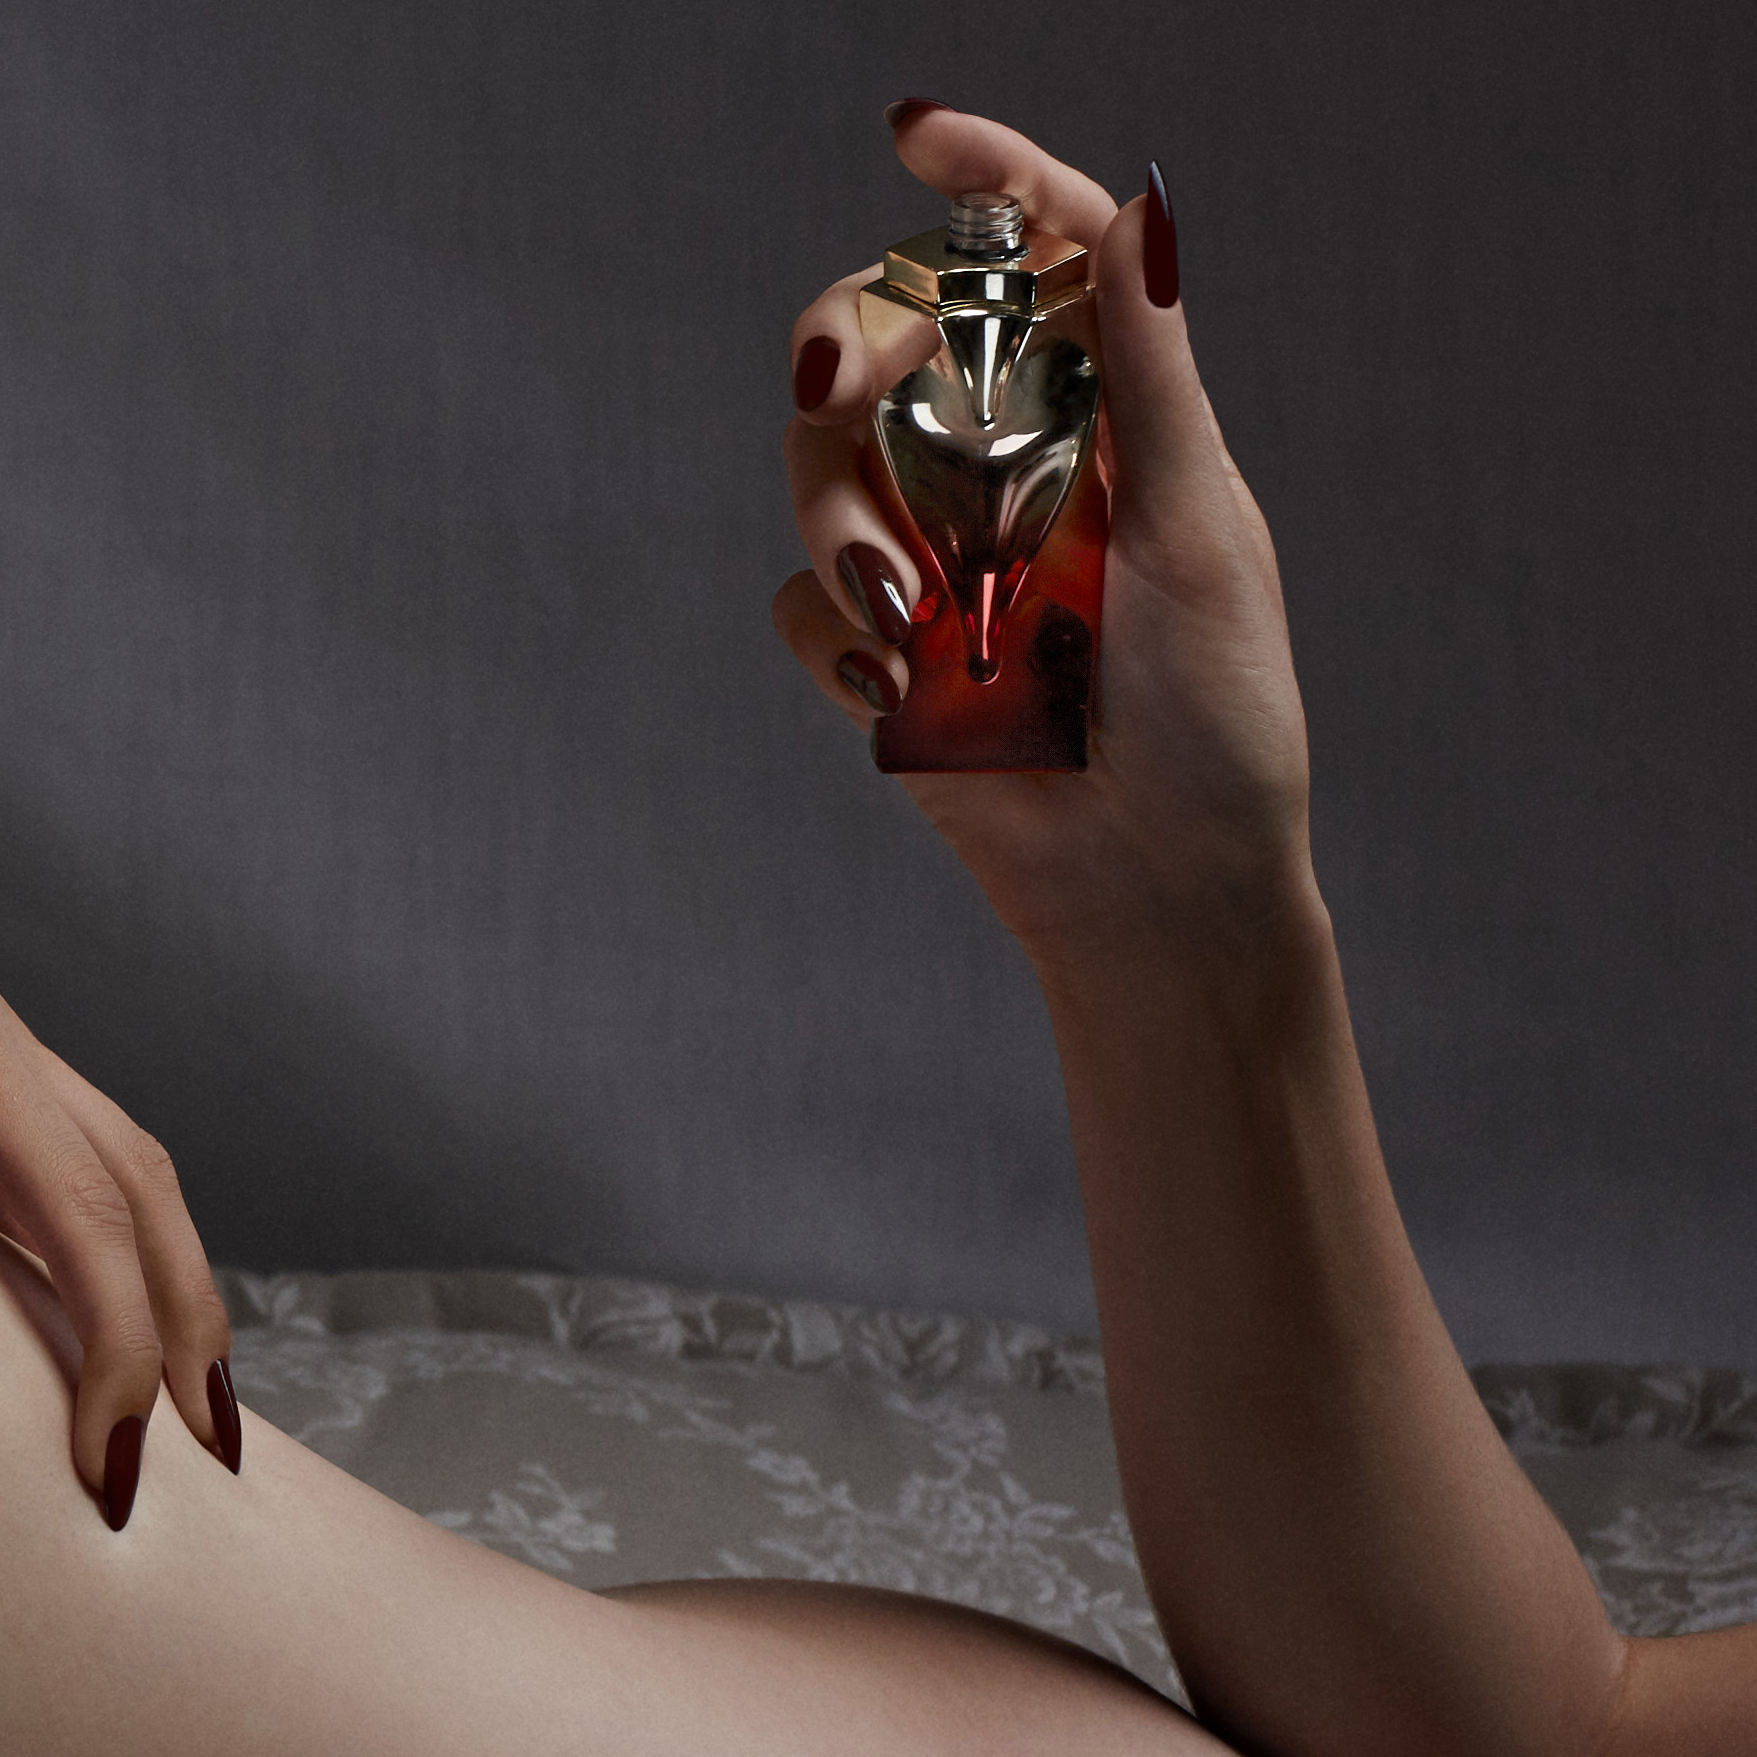 THE ULTIMATE OPULENCE OF FRAGRANCE: CHRISTIAN LOUBOUTIN'S BRAND NEW PERFUME OILS